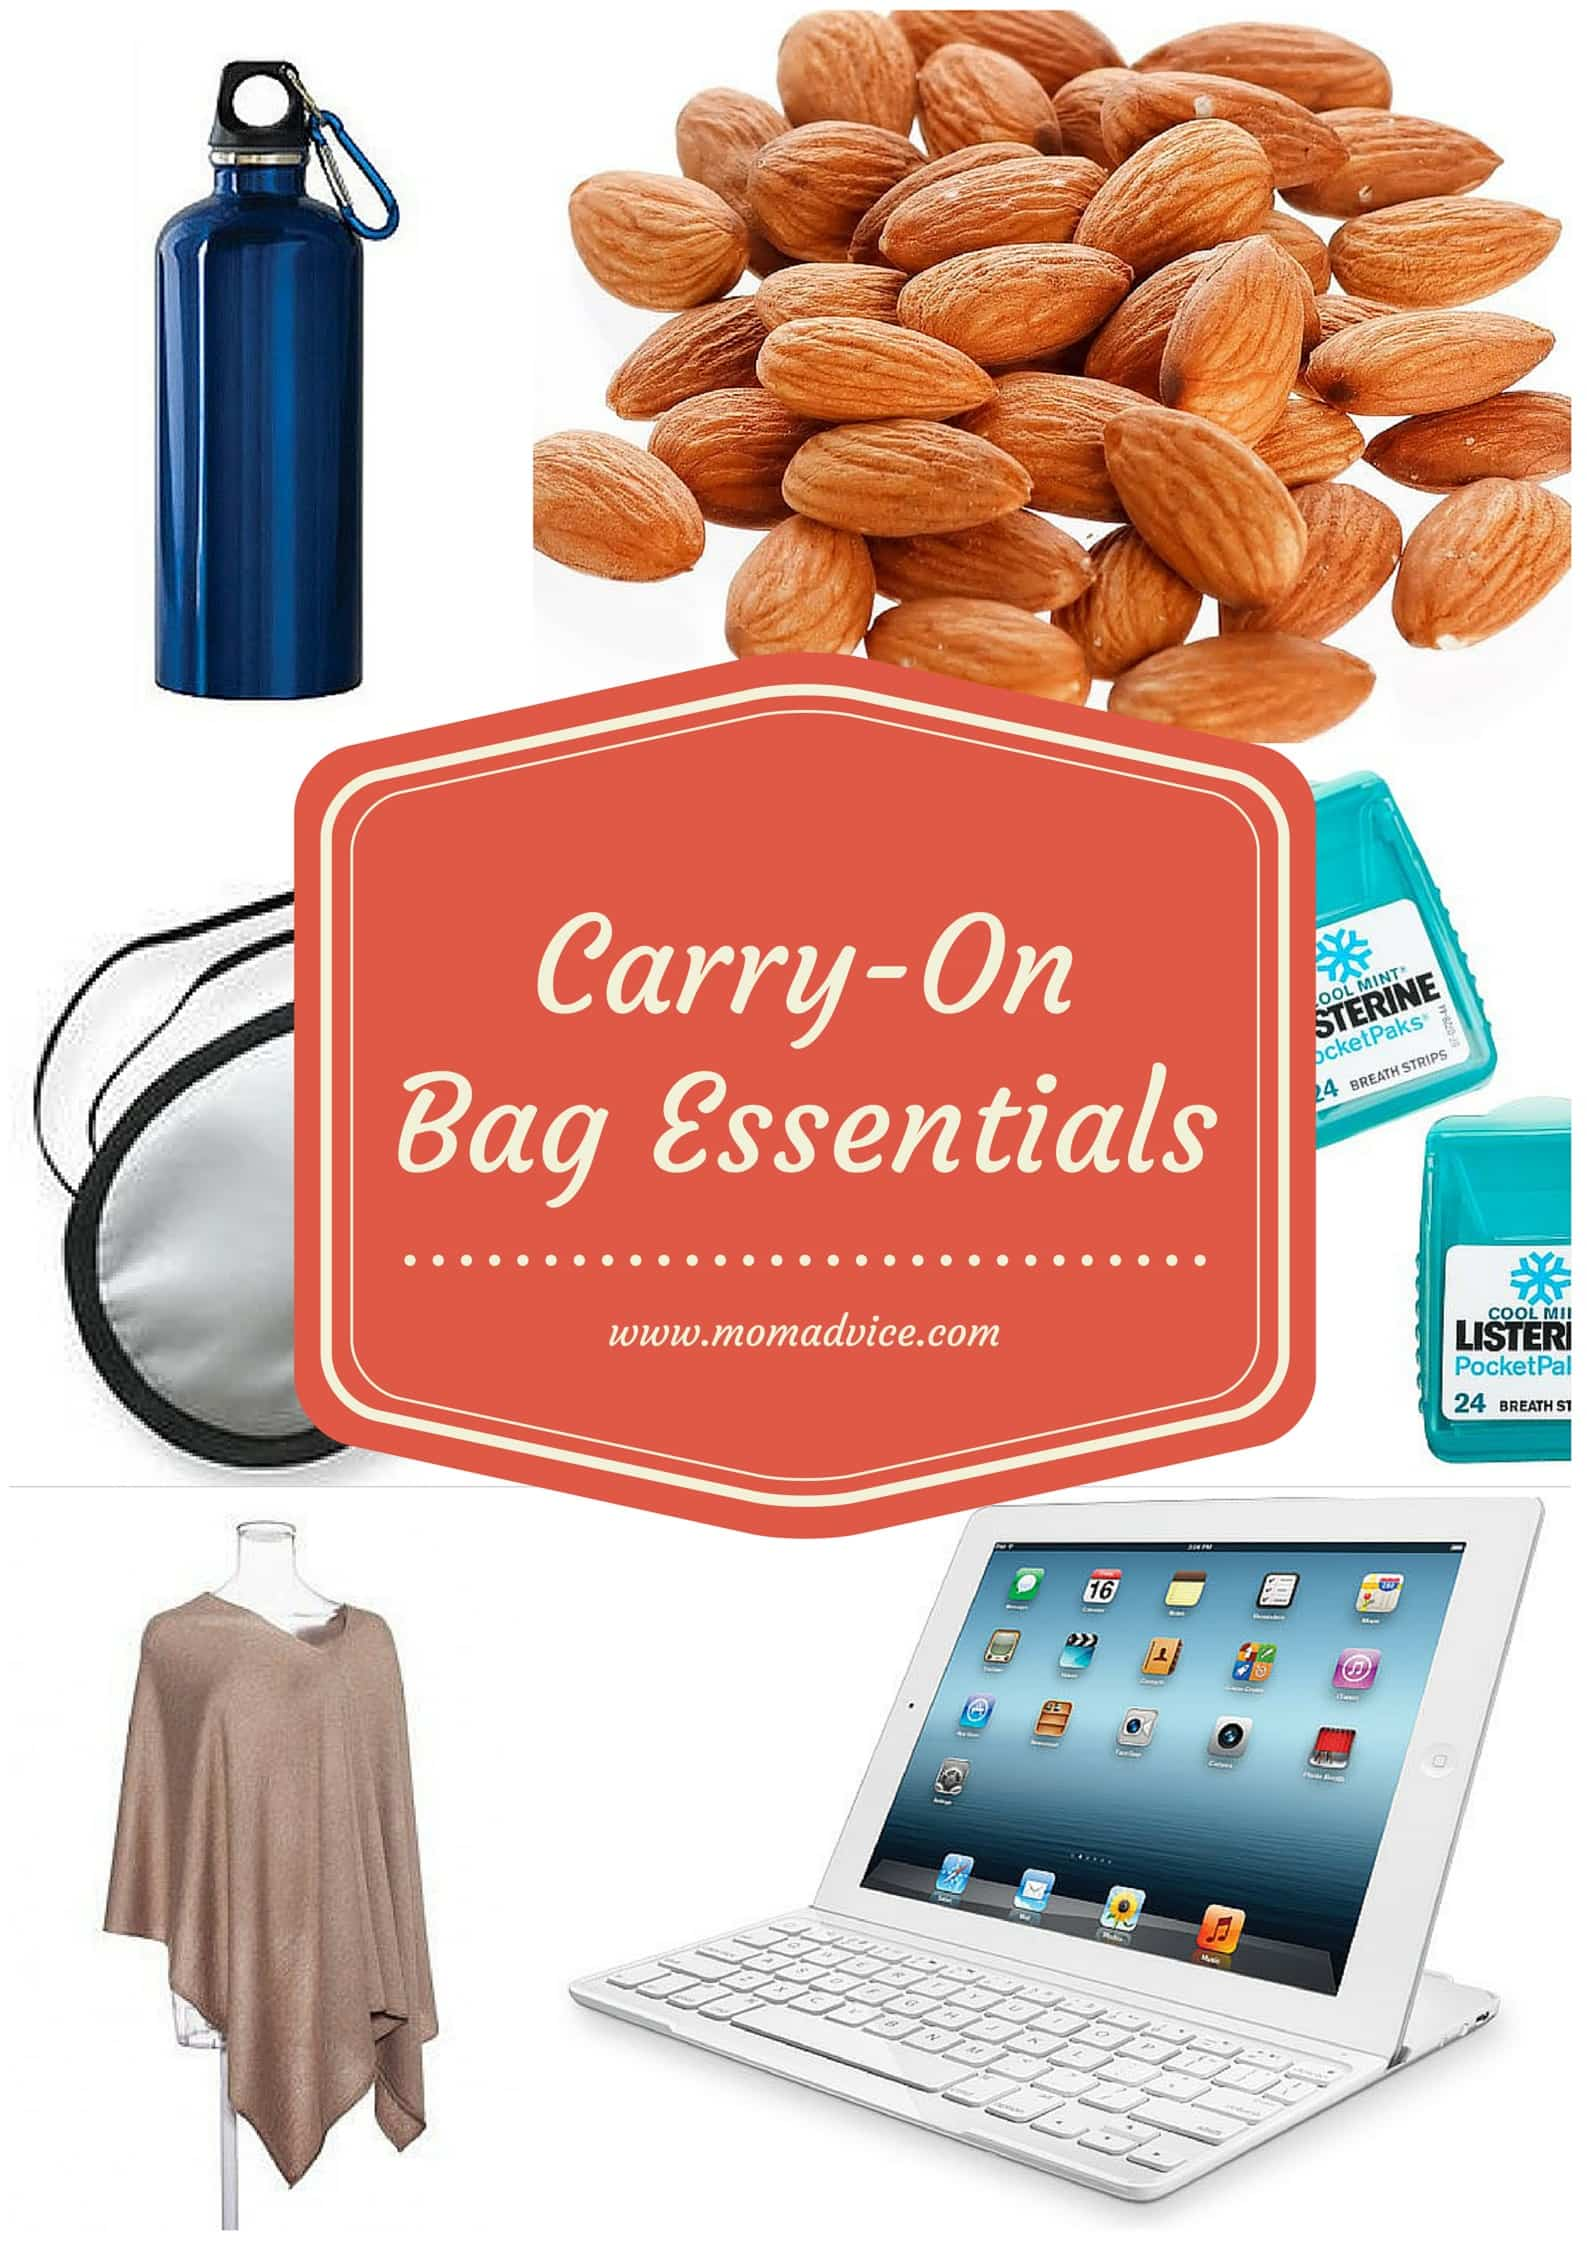 m challenge: What's in Your Carry On Bag?